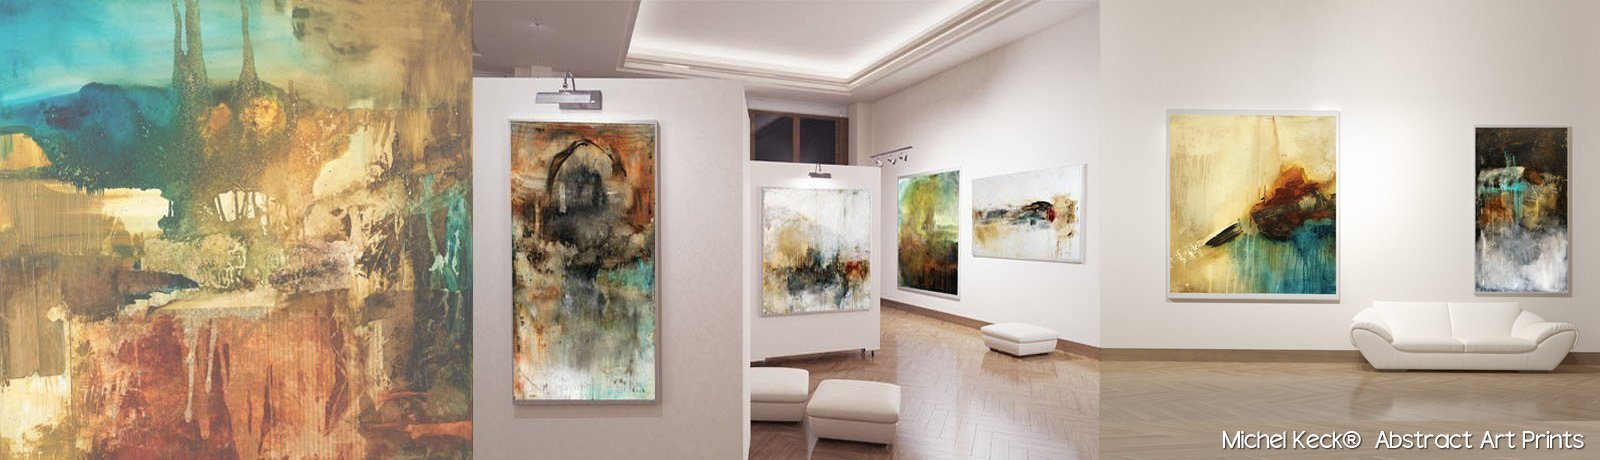 Michel Keck®Wildlife Art Collection